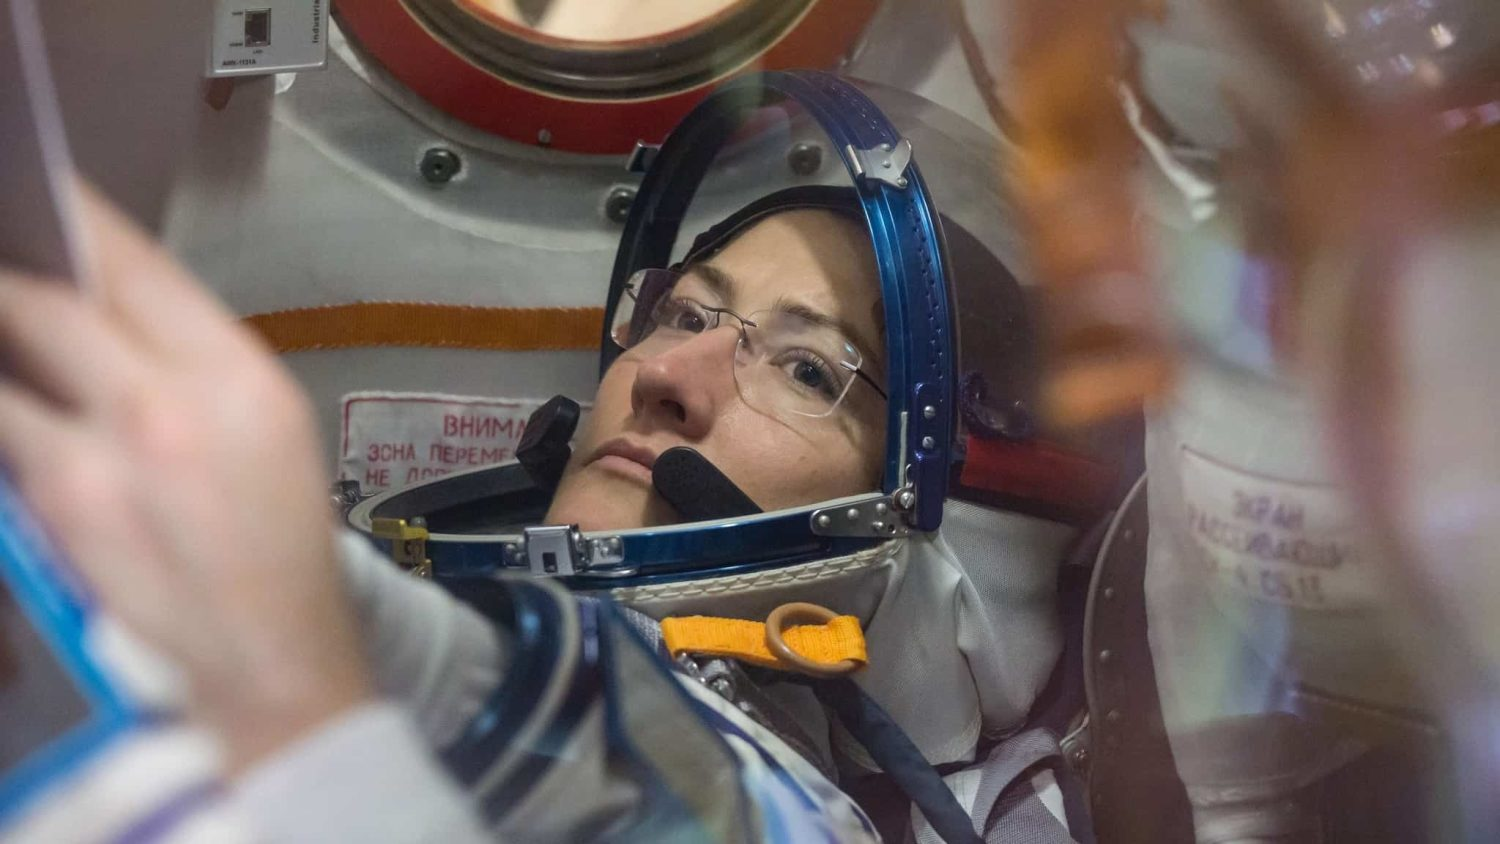 Christina Koch in astronaut gear during training for her space launch